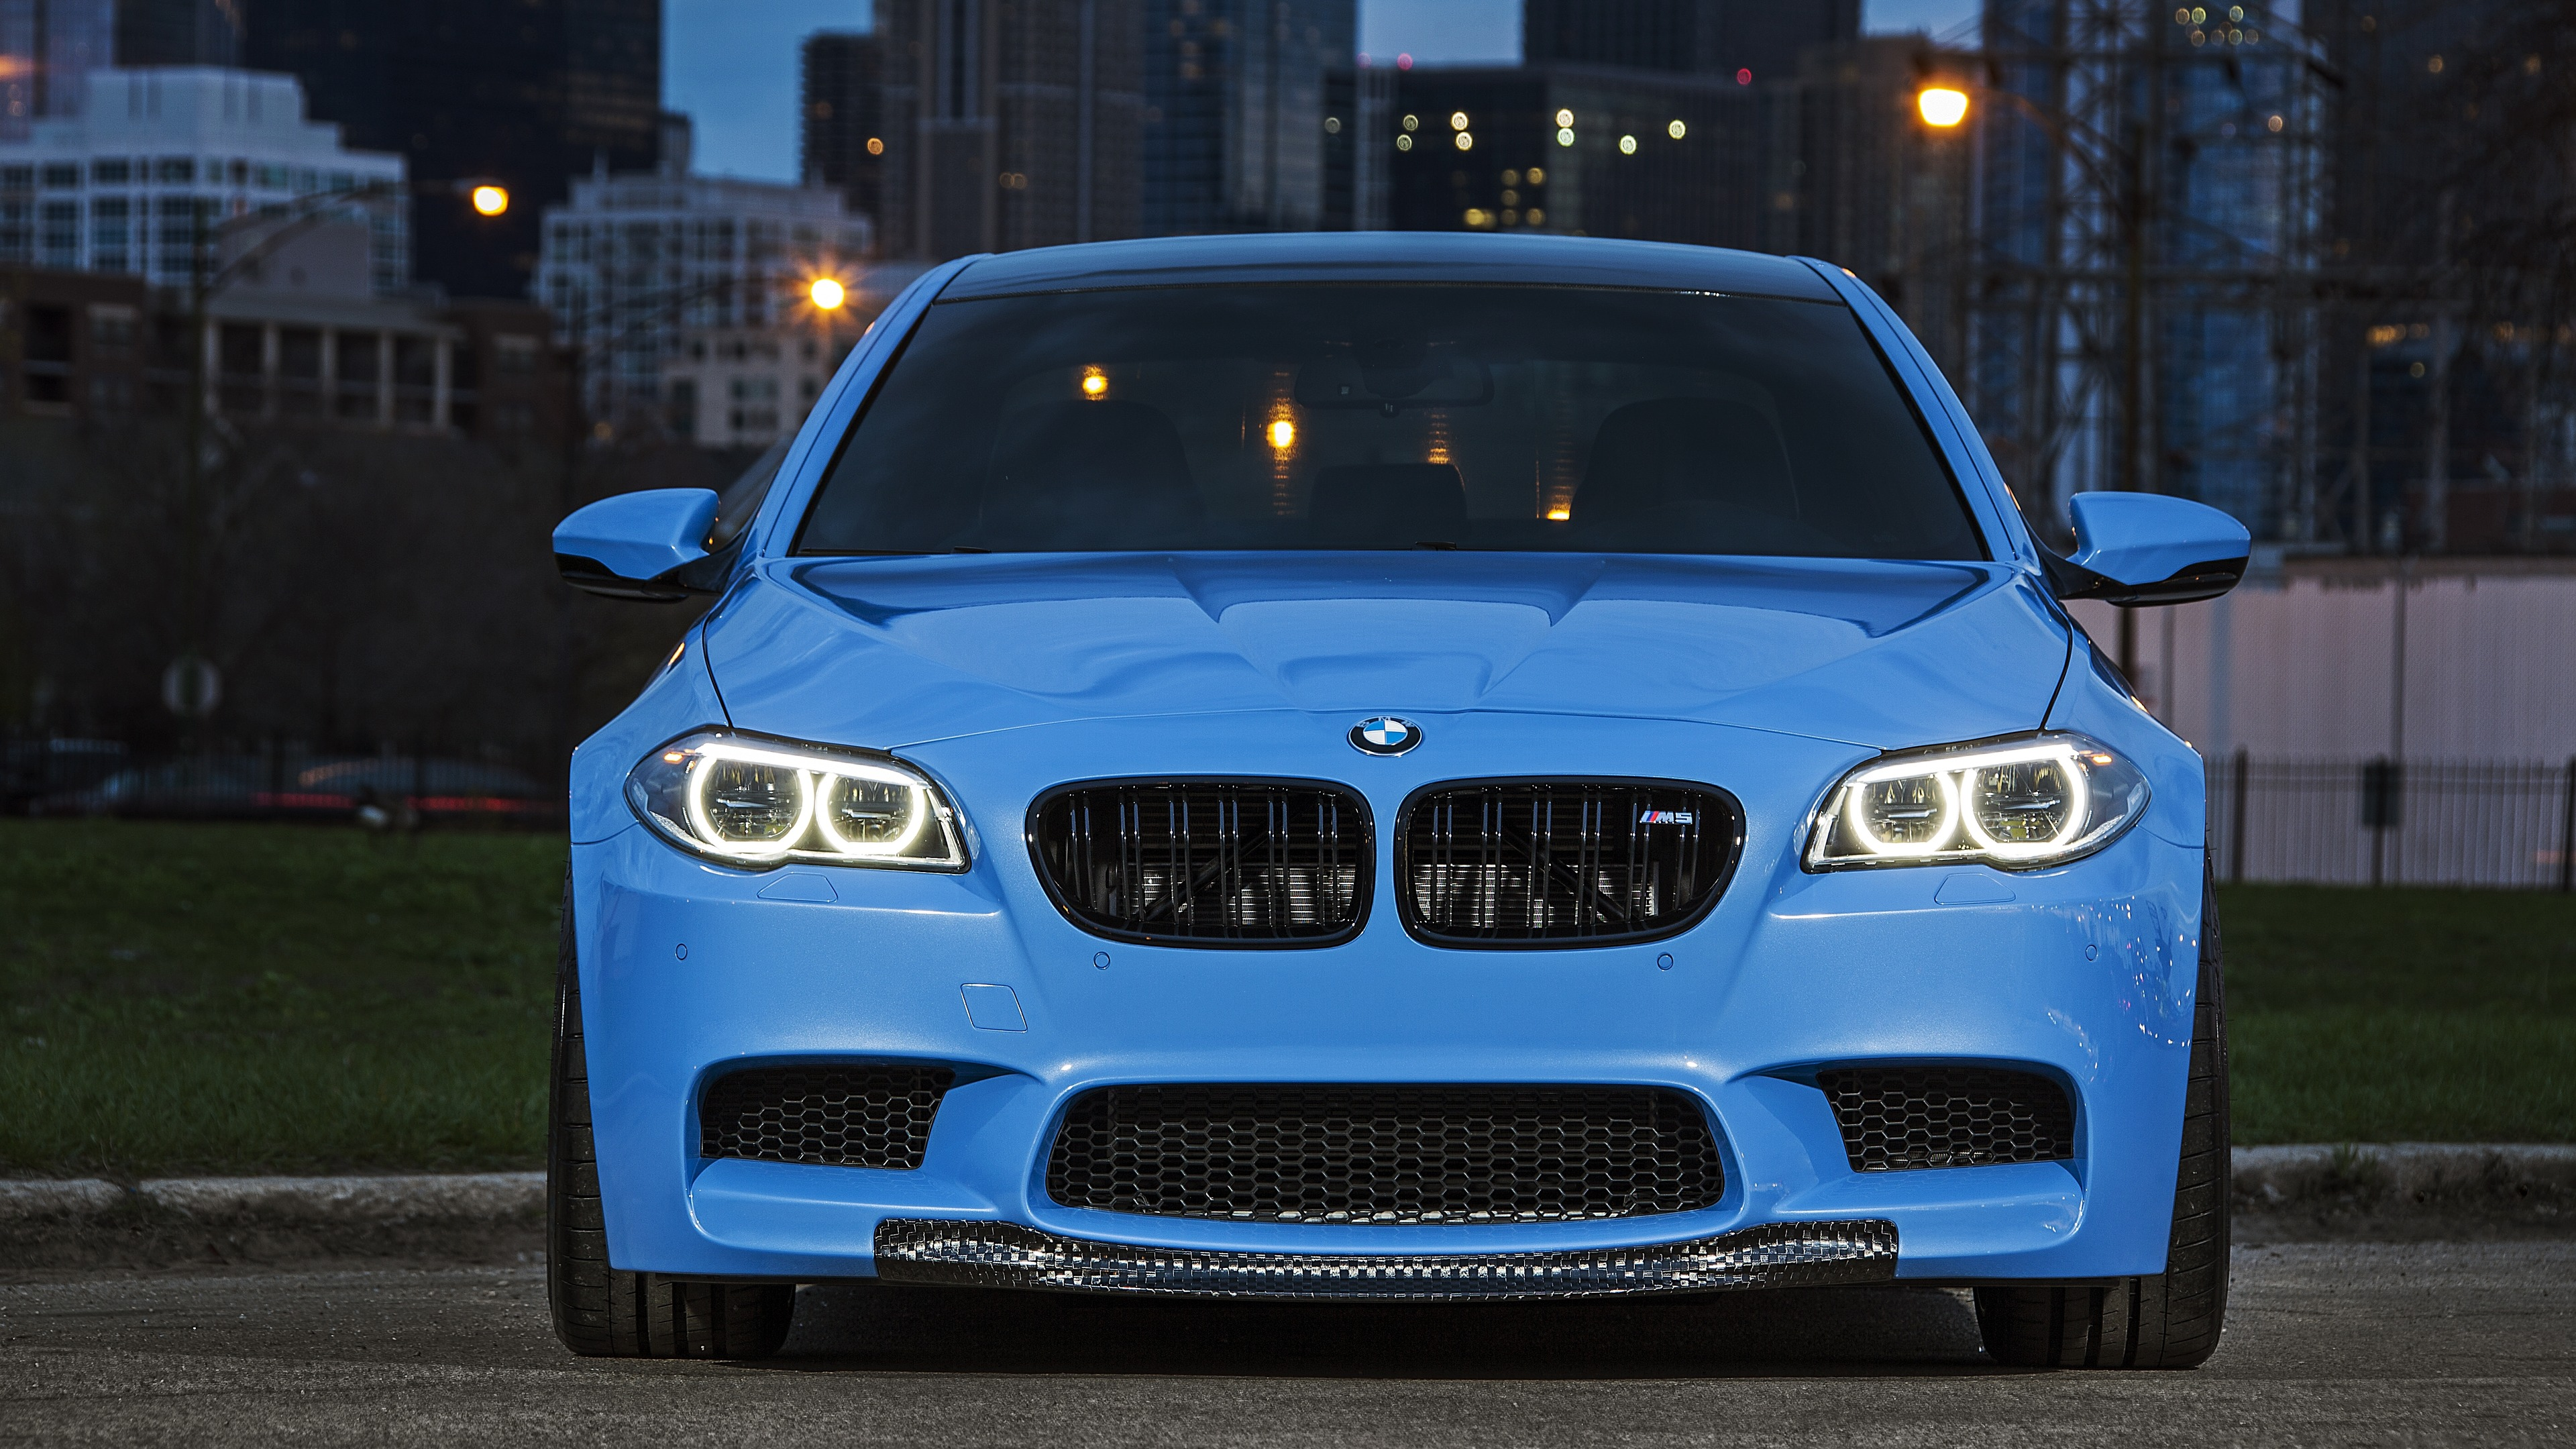 3840x2160 - BMW M5 Wallpapers 13